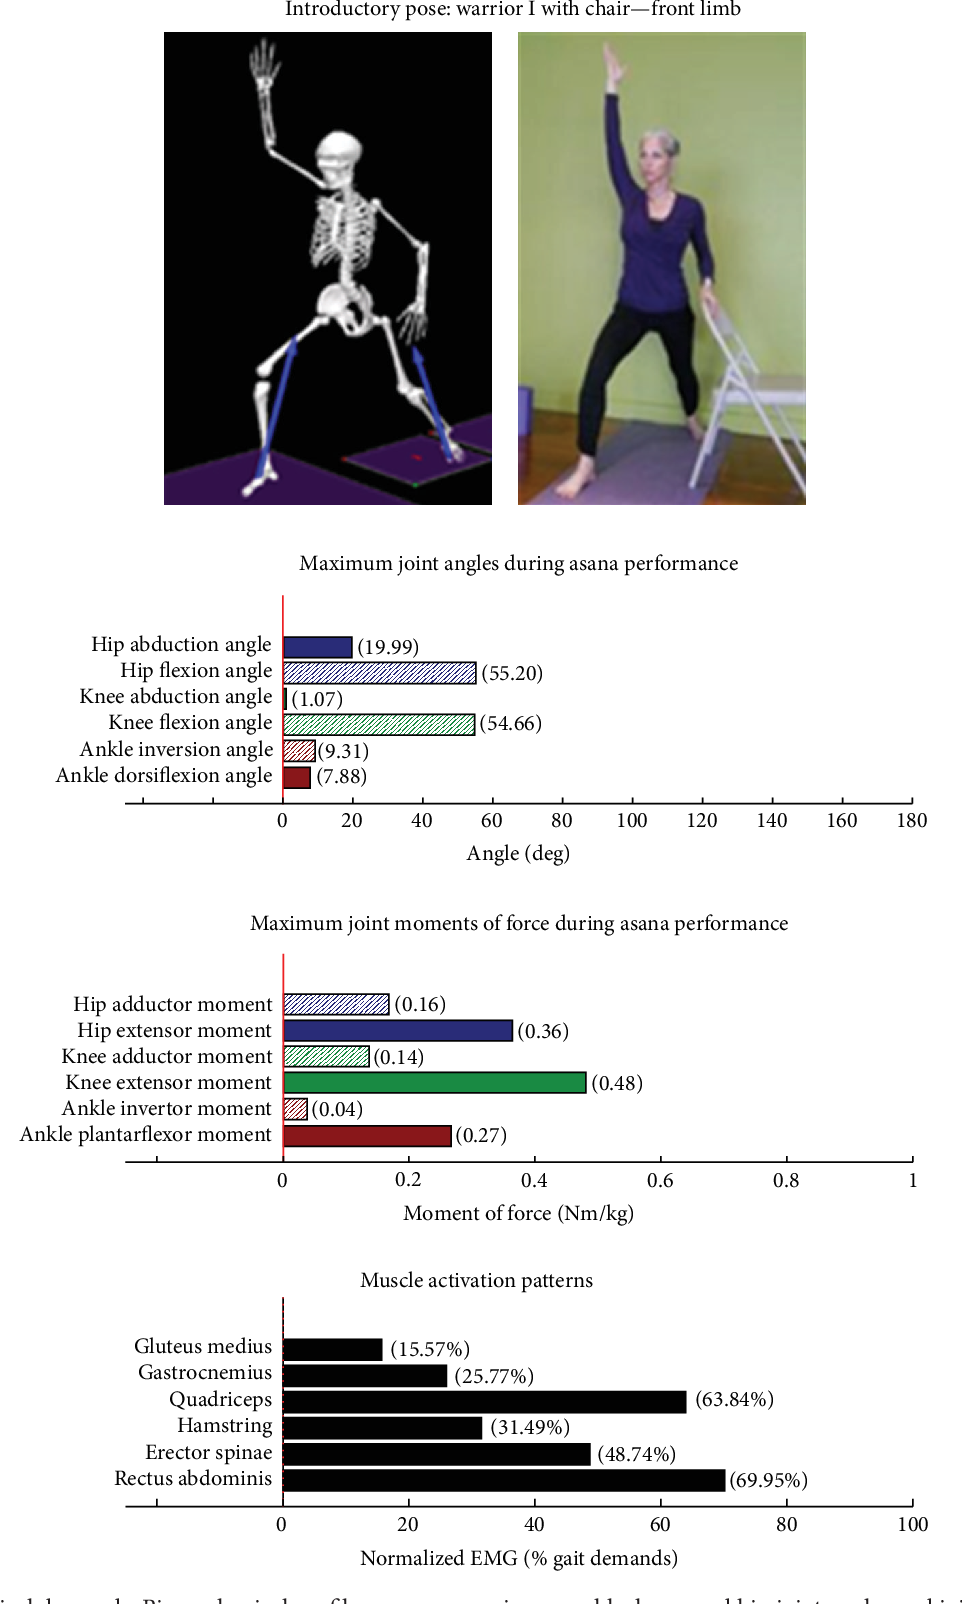 Pdf Physical Demand Profiles Of Hatha Yoga Postures Performed By Older Adults Semantic Scholar